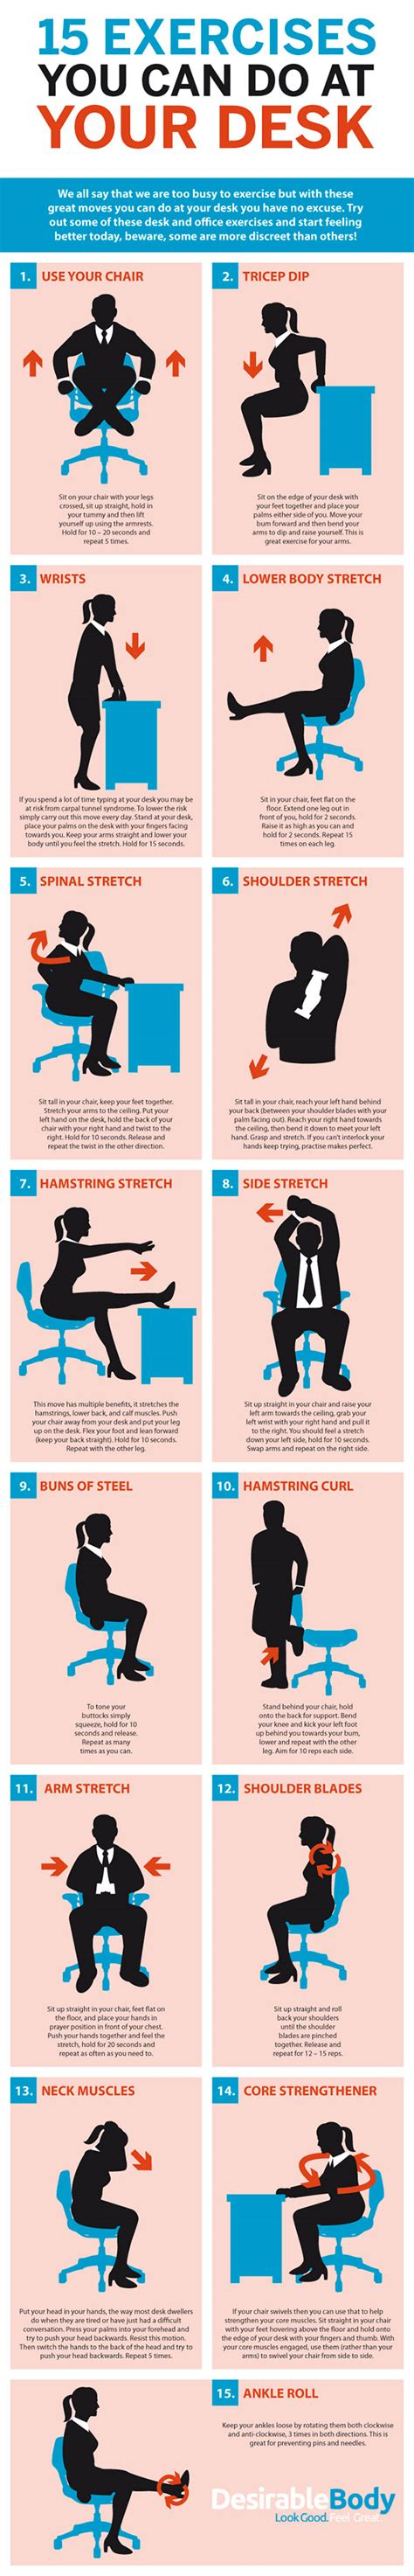 exercises for sitting at desk 15 exercises you can do at your desk build healthy body